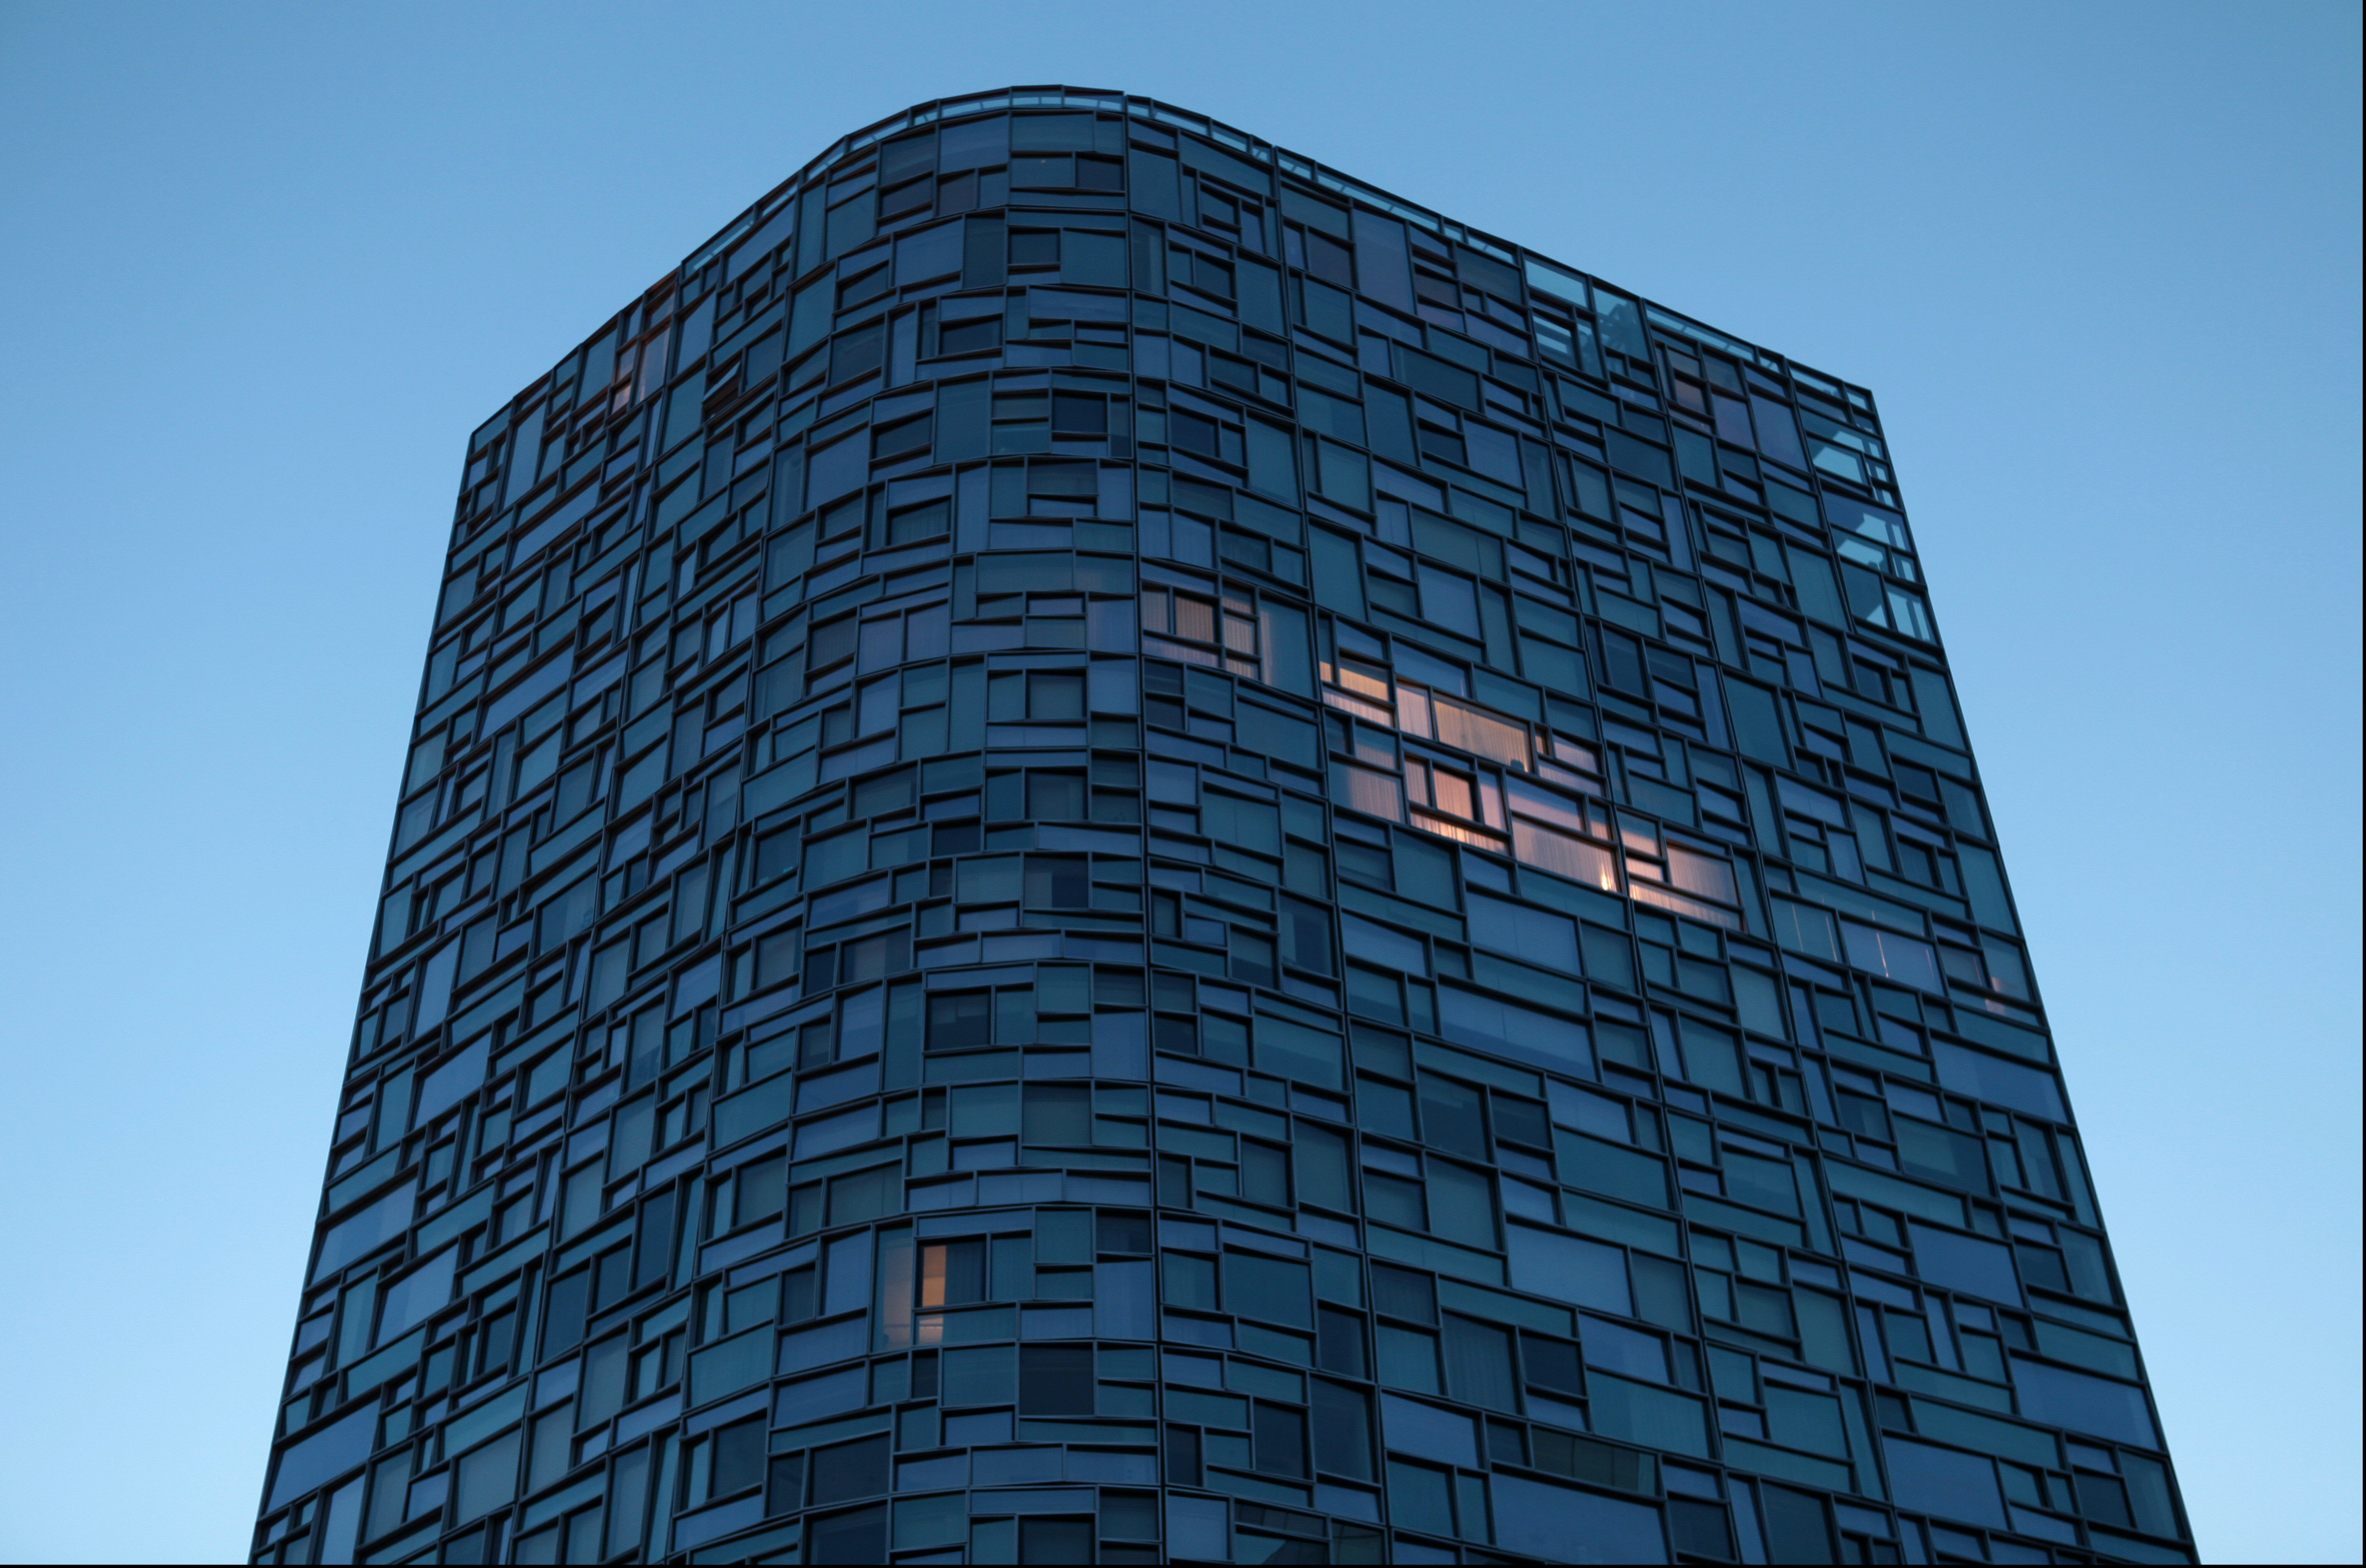 Top view of Nouvel's residential tower, with lights on in a few units with asymmetrical windows